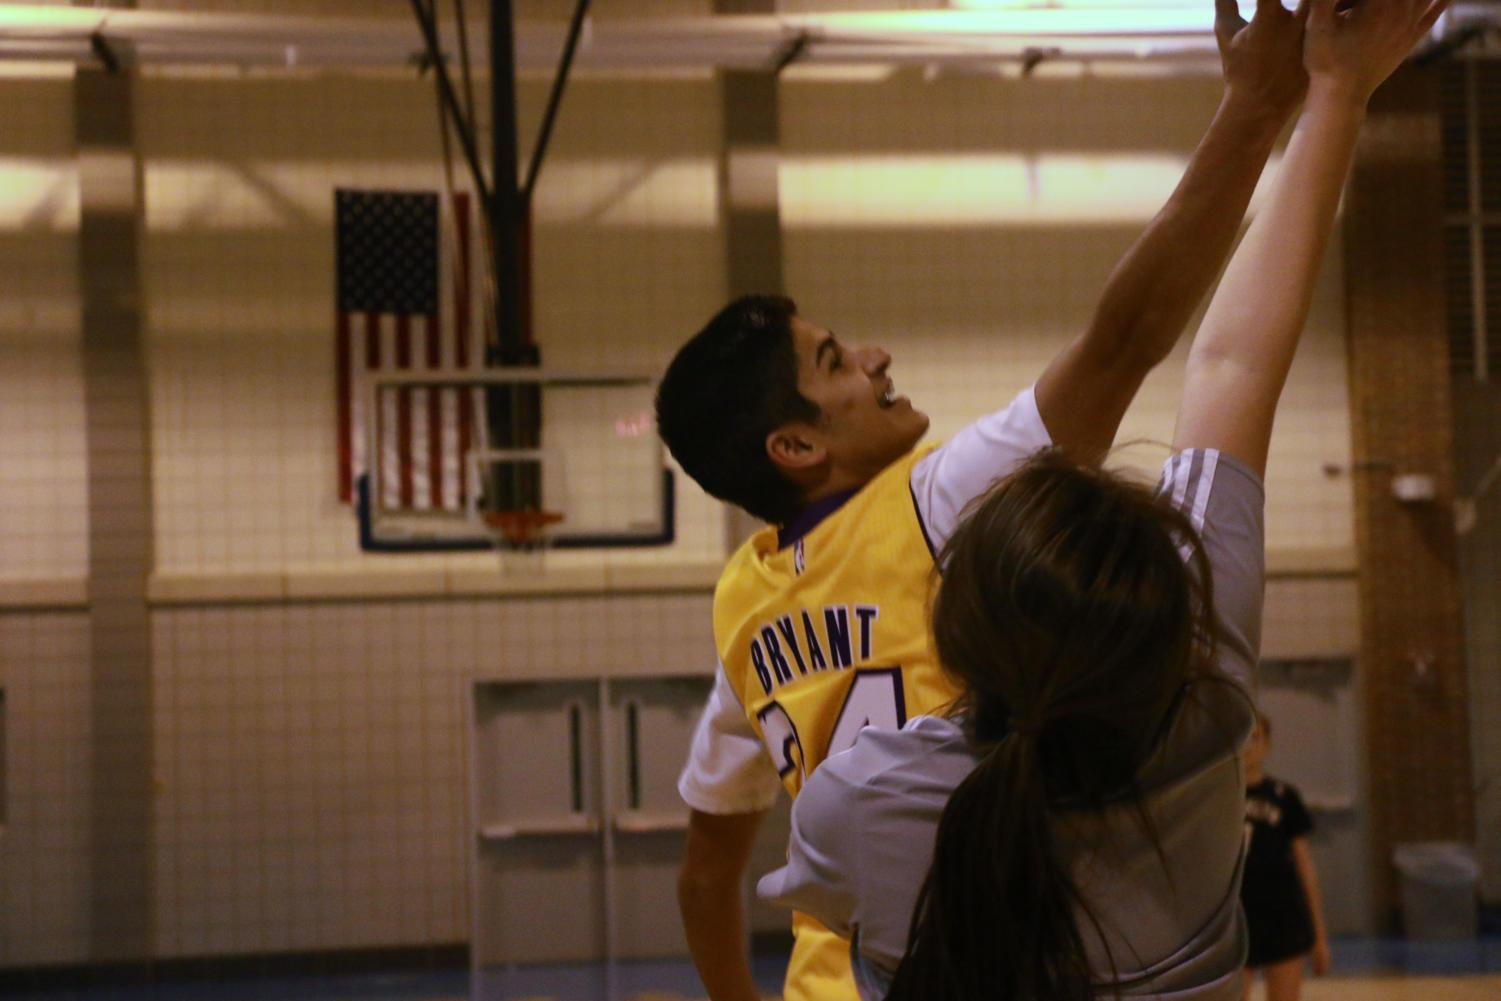 Rohil Senapati, intramural player and sophomore, attempts to rebound a basketball during one of their intramurals games.